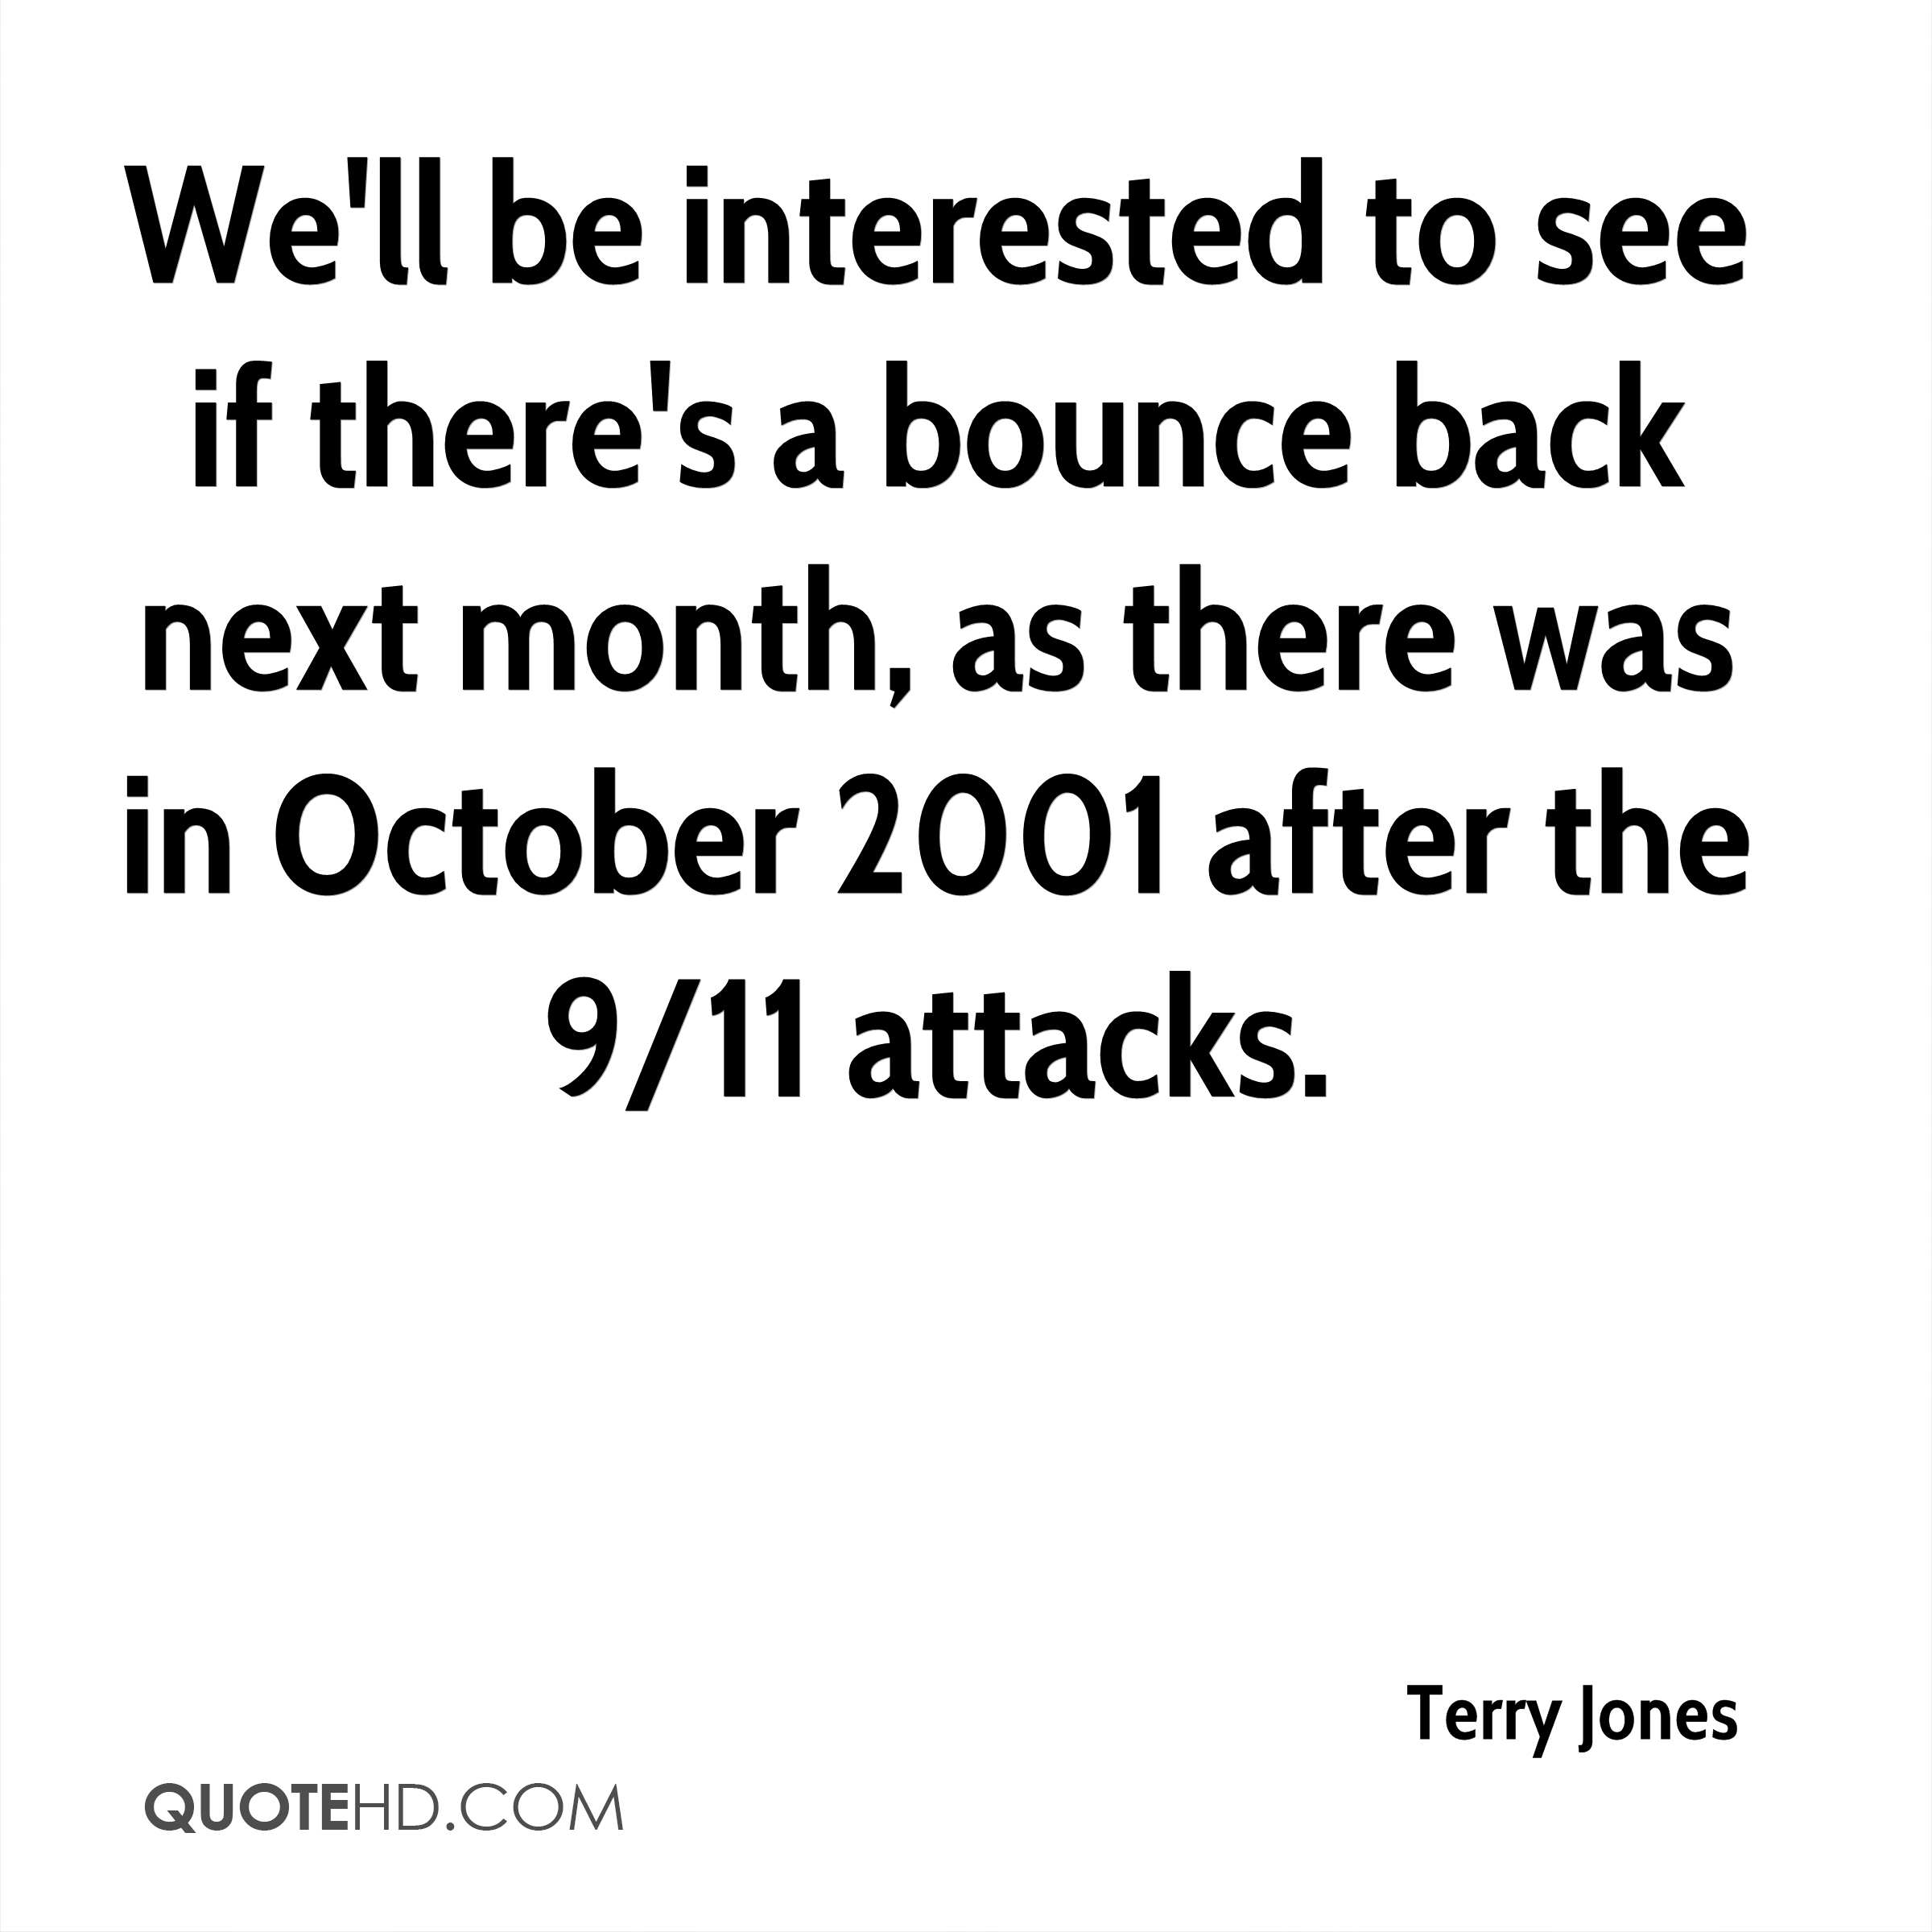 We'll be interested to see if there's a bounce back next month, as there was in October 2001 after the 9/11 attacks.